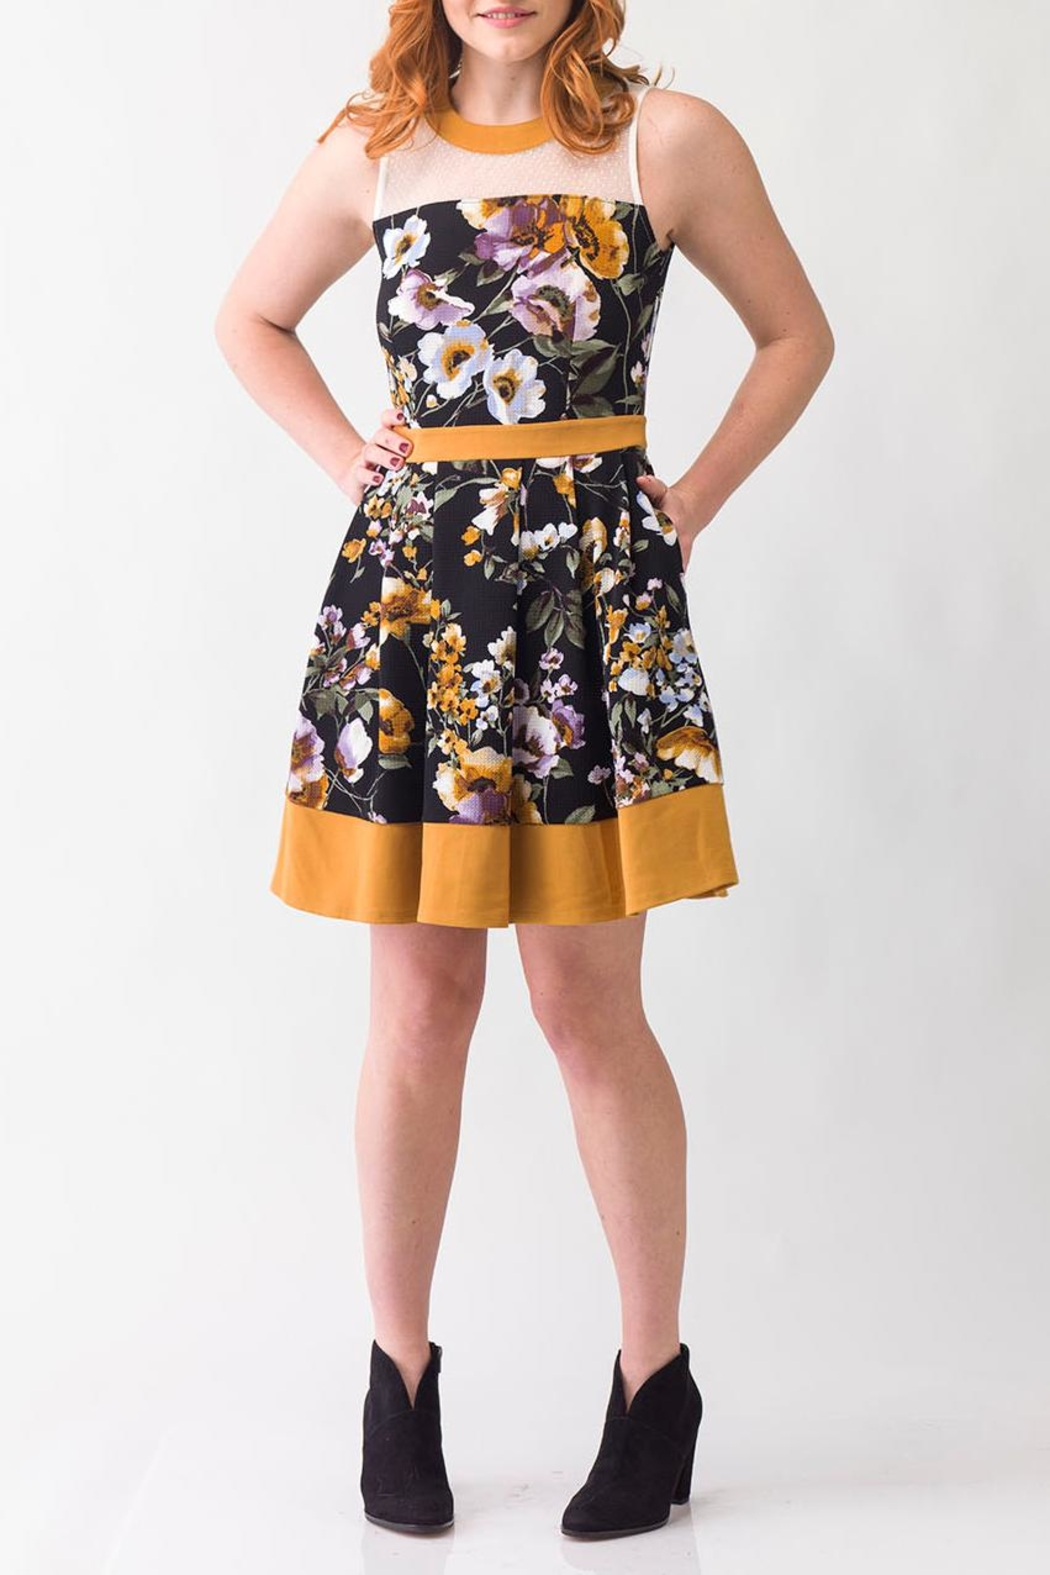 8db7c9481b Smak Parlour Rebel Beauty Dress from Omaha by Daisy Jones  Locker ...